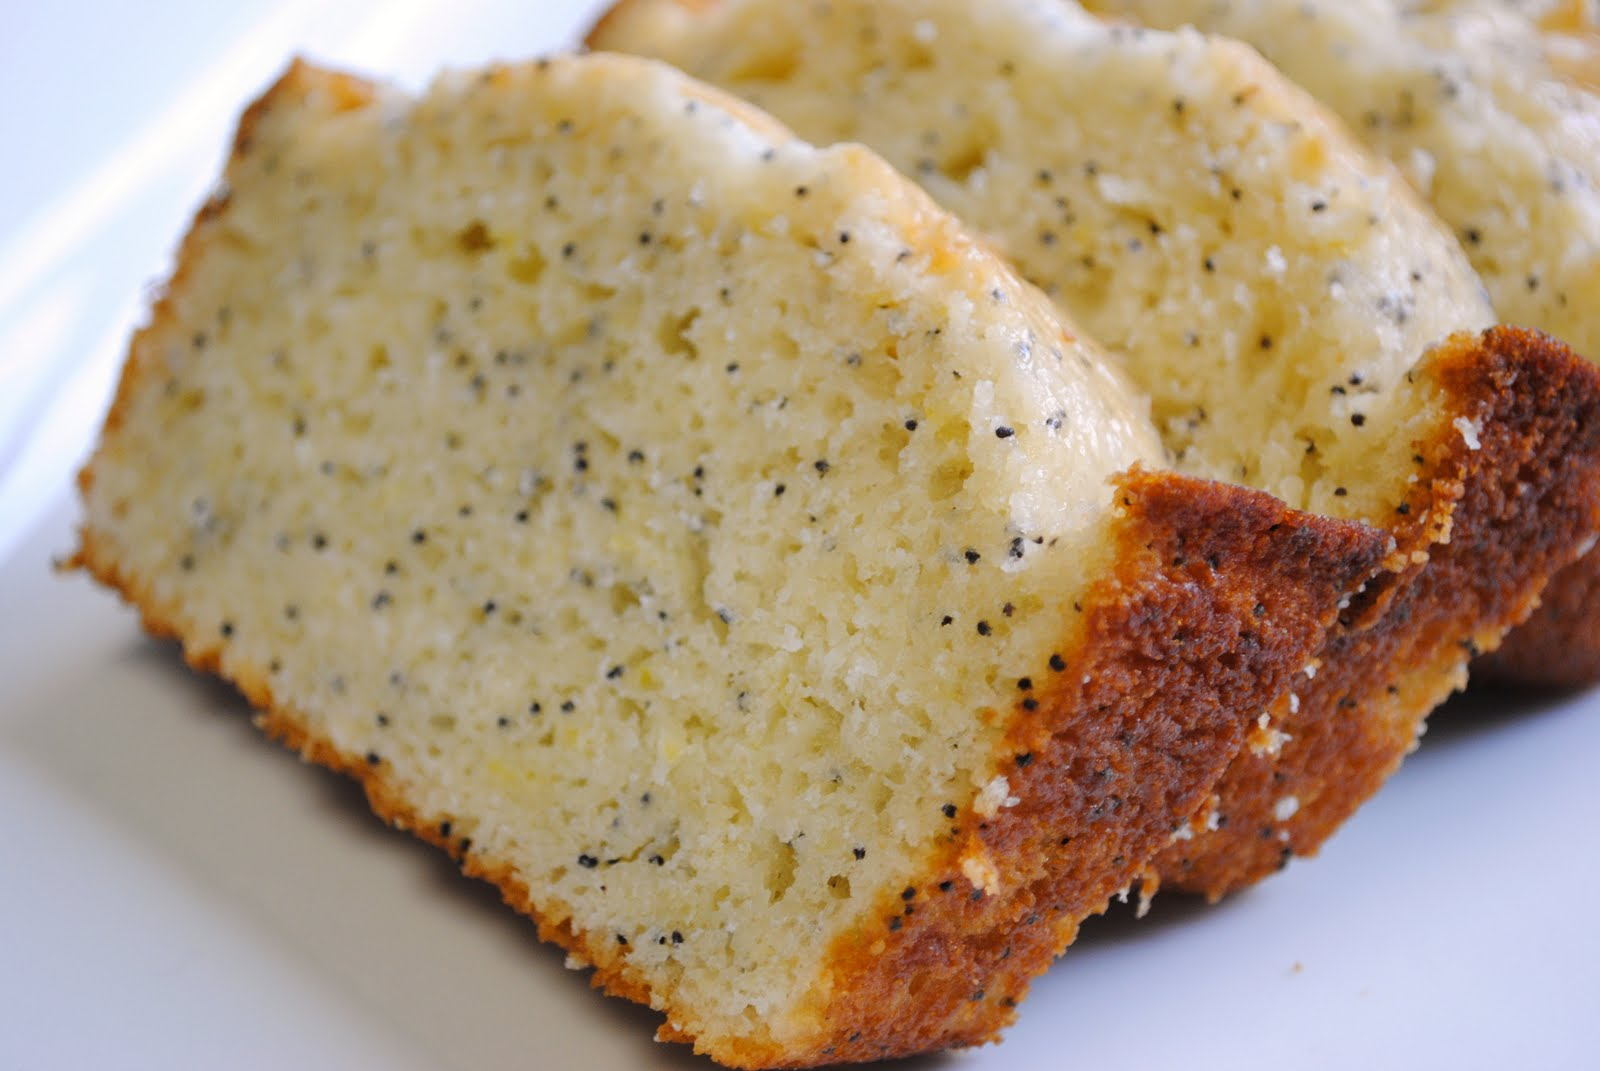 Homemade By Holman: Lemon Poppy Seed Bread